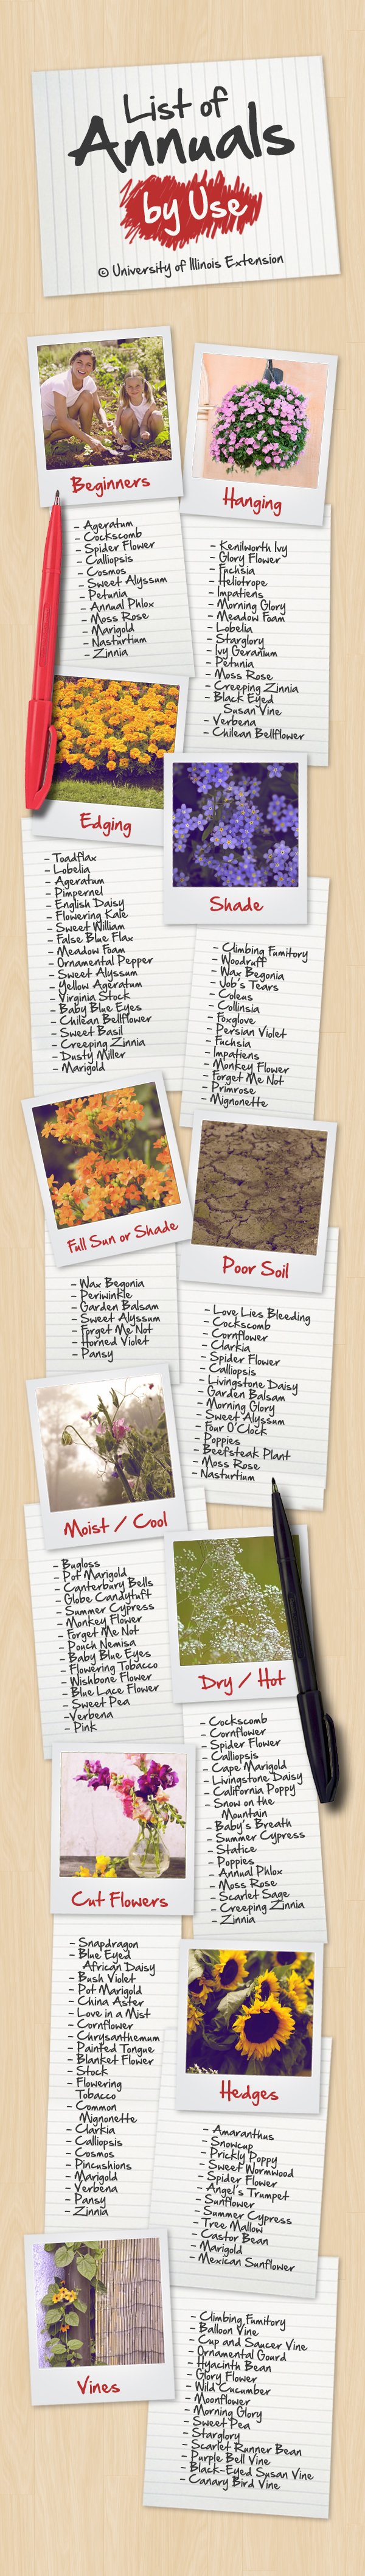 Annuals For Specific Uses   Gardening With Annuals